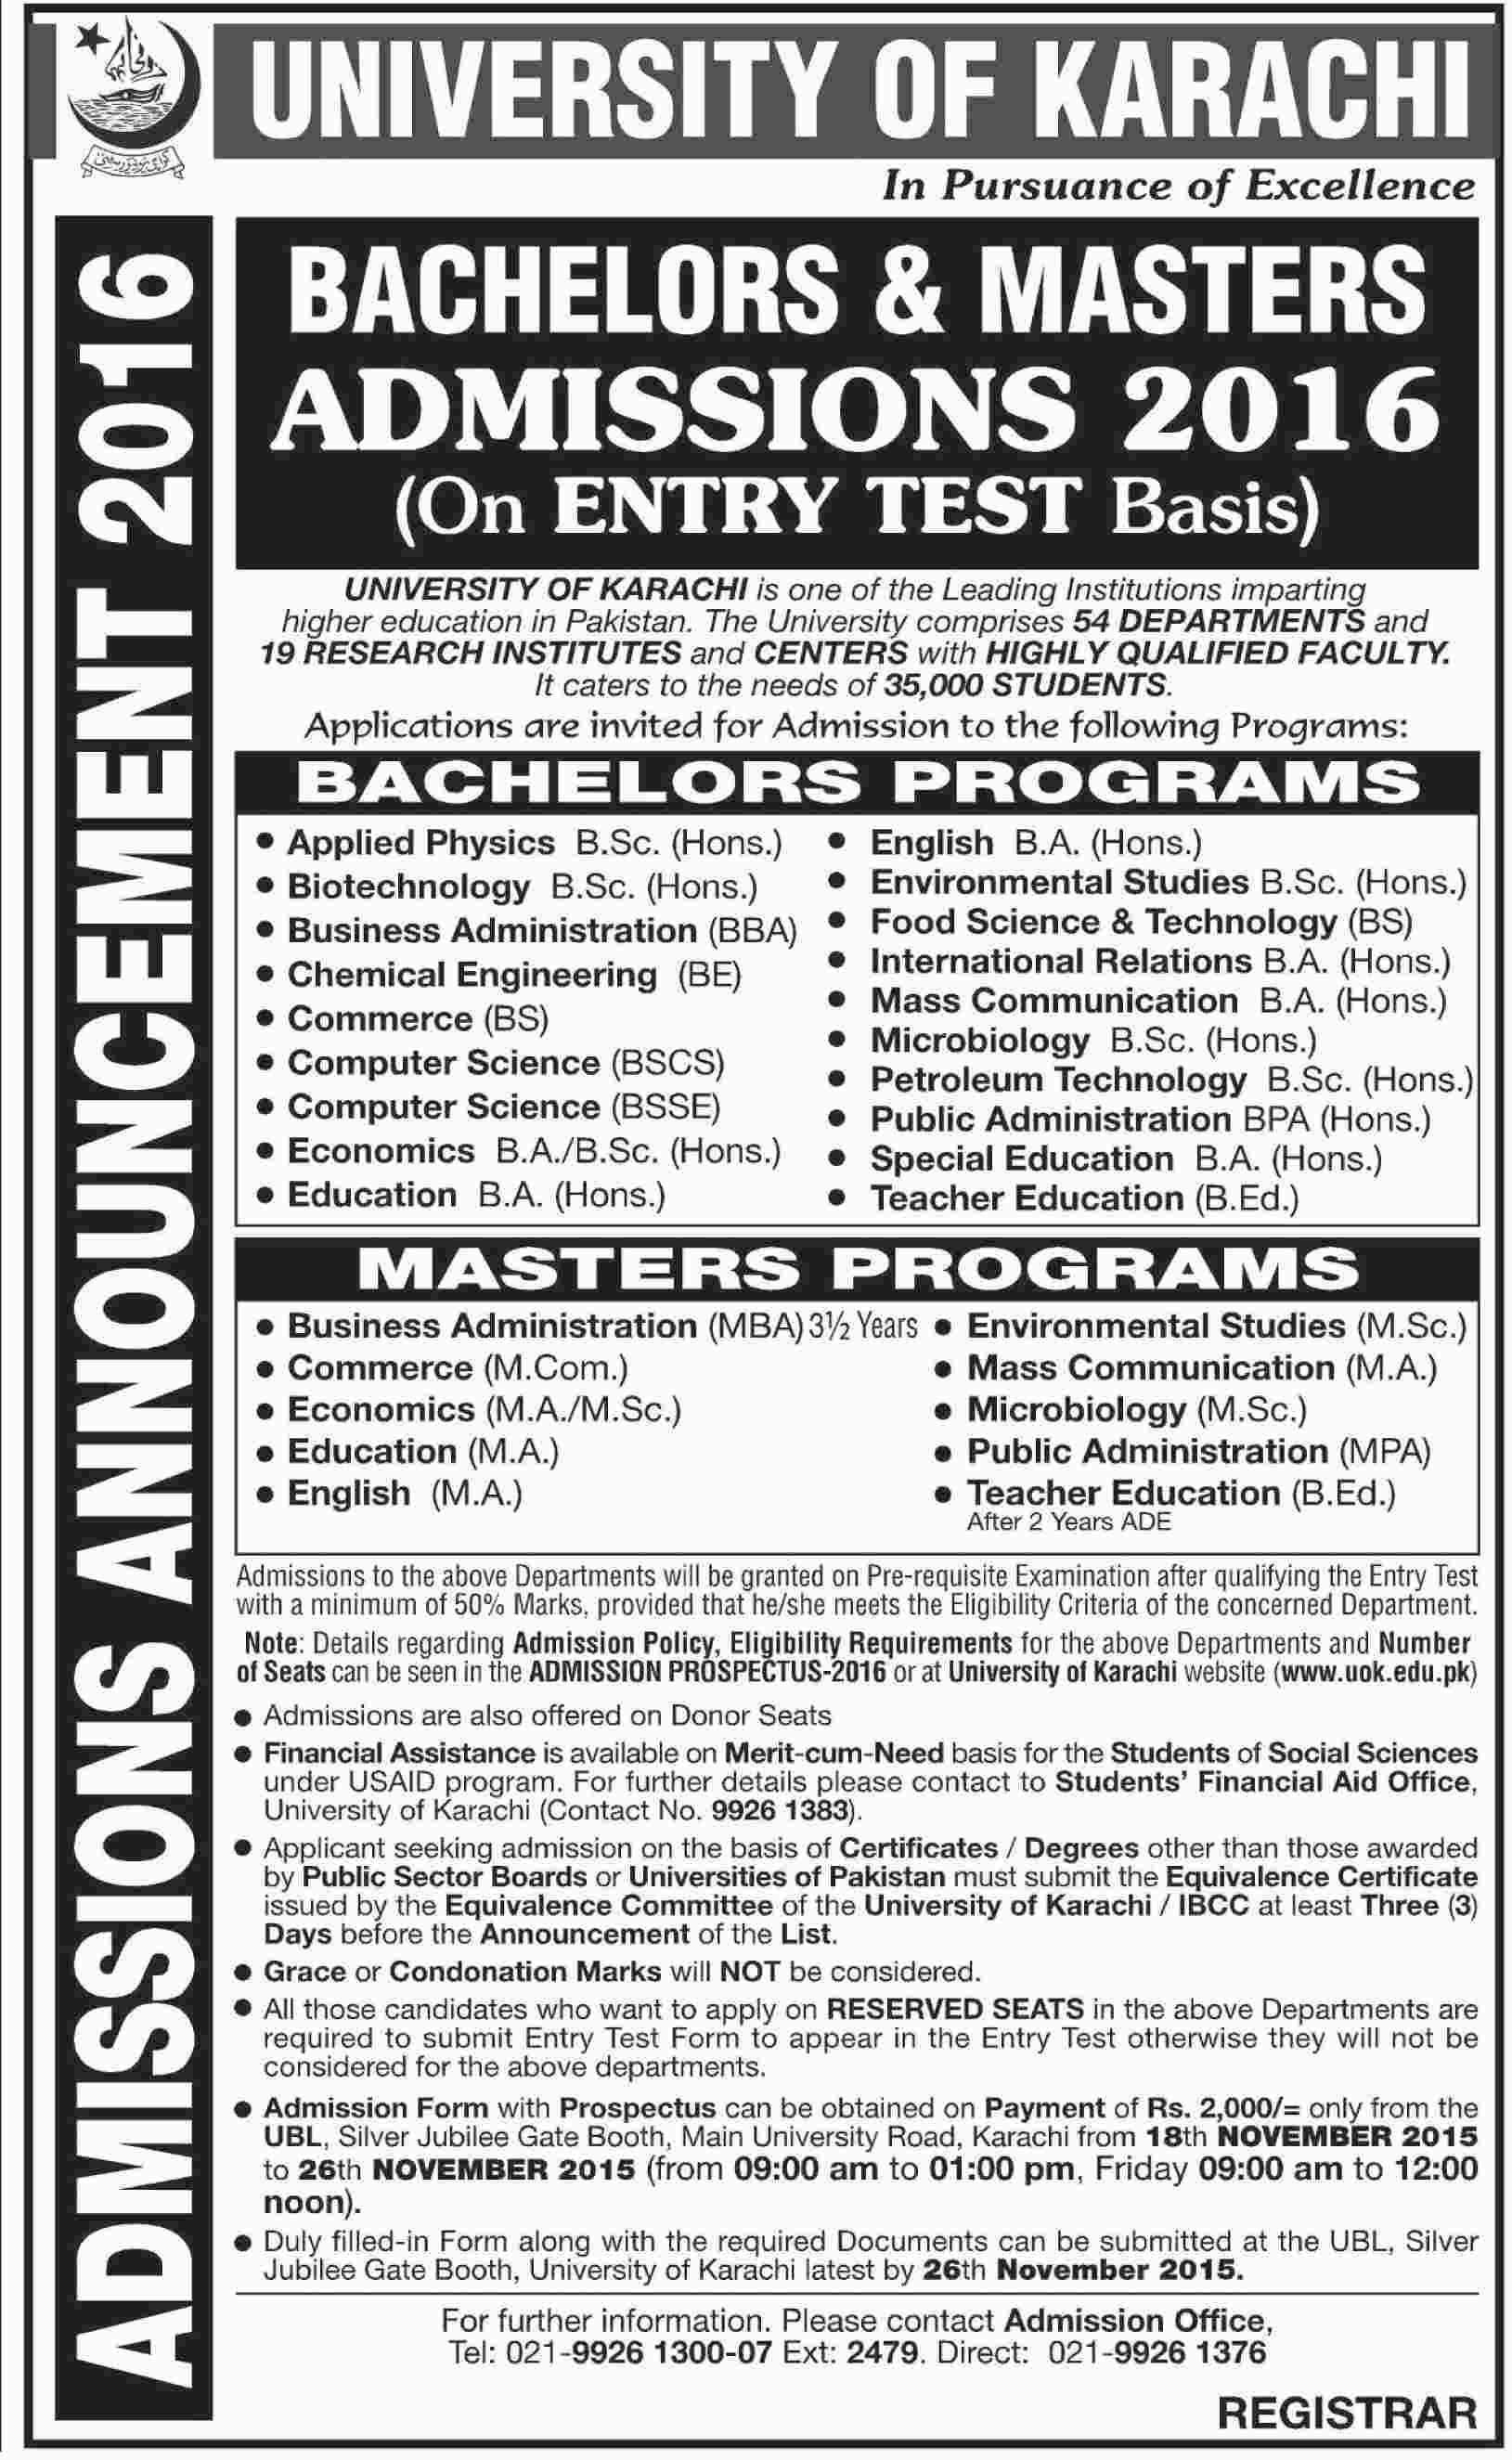 University Of Karachi UOK Bachelor, Masters Morning Admission 2016